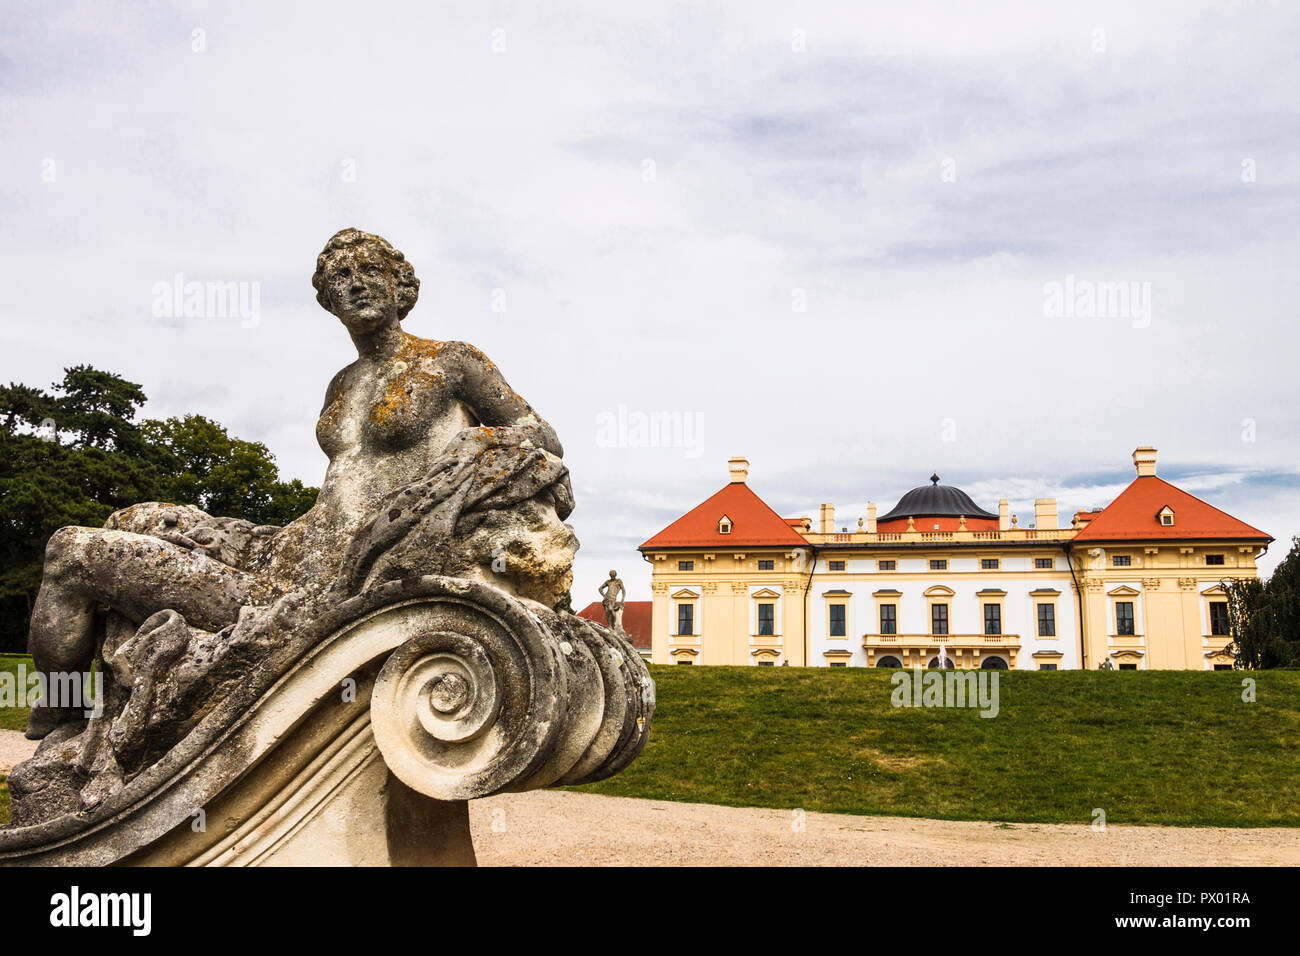 Castle and gardens at Slavkov chateau, Austerlitz, Czech Republic - Stock Image